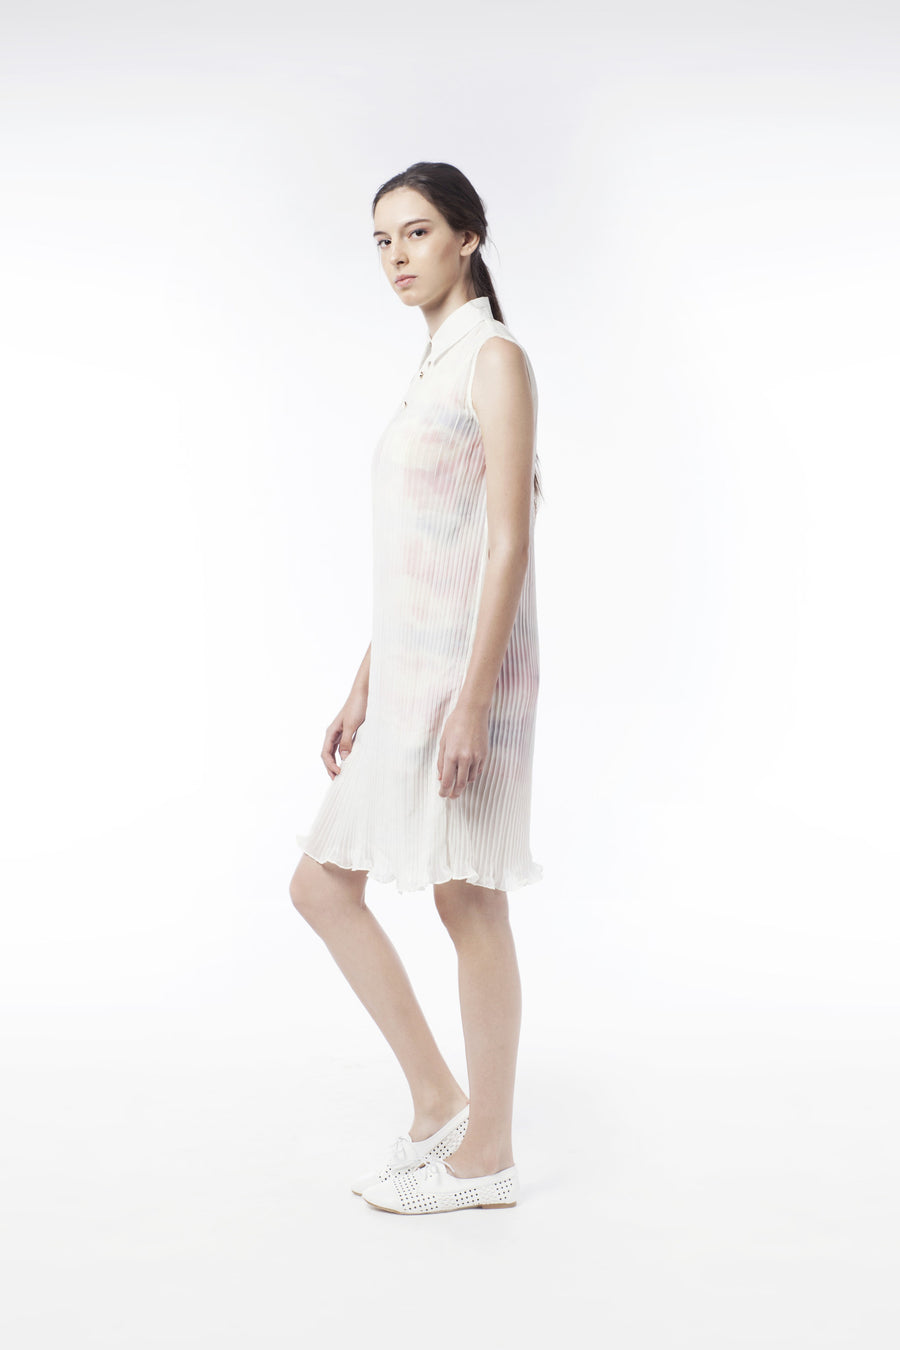 2 In 1 Mysterious Sheer Pleat Dress - GlanceZ   - 1